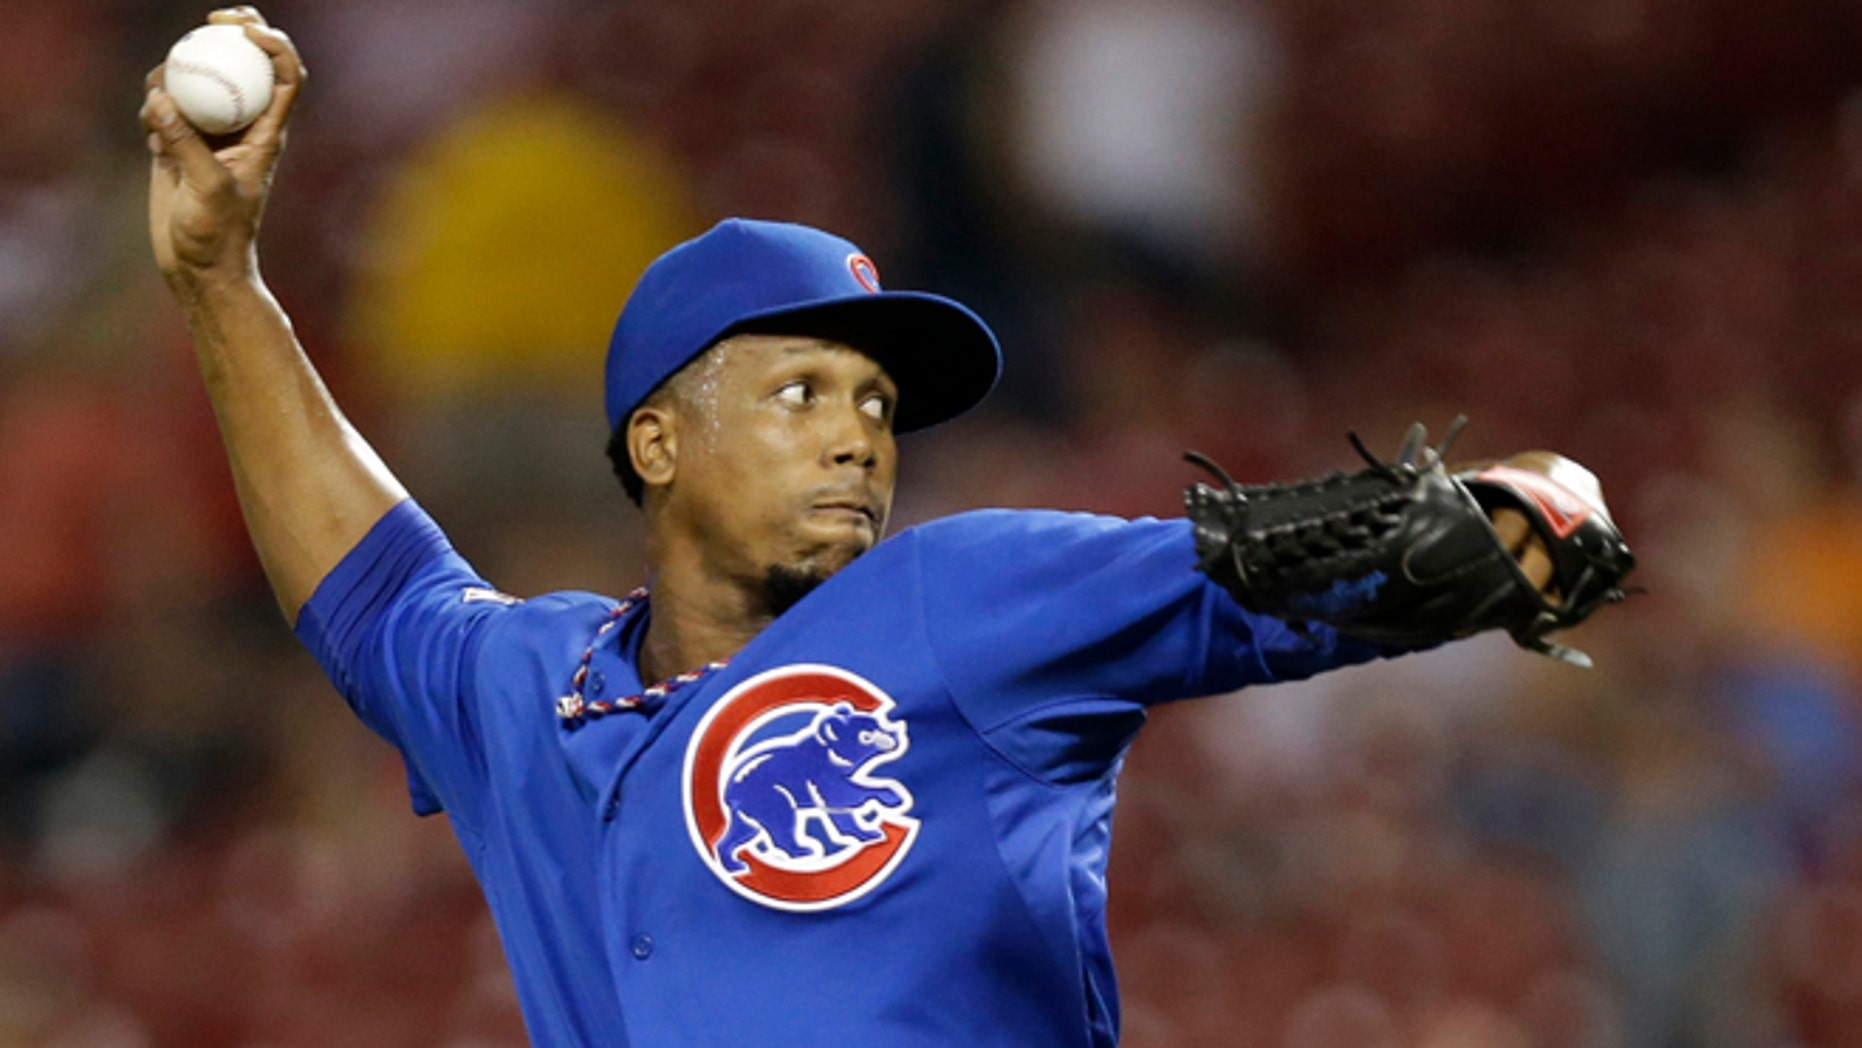 In this Aug. 26, 2014, file photo, Chicago Cubs relief pitcher Pedro Strop throws against the Cincinnati Reds during the eighth inning of a baseball game in Cincinnati. Strop was involved in a car accident in his native Dominican Republic but was not injured, officials said Friday, Nov. 28, 2014. The 29-year-old was driving a pickup truck when he crashed against a wall late Wednesday along a road southwest of the capital of Santo Domingo. (AP Photo/Al Behrman, File)